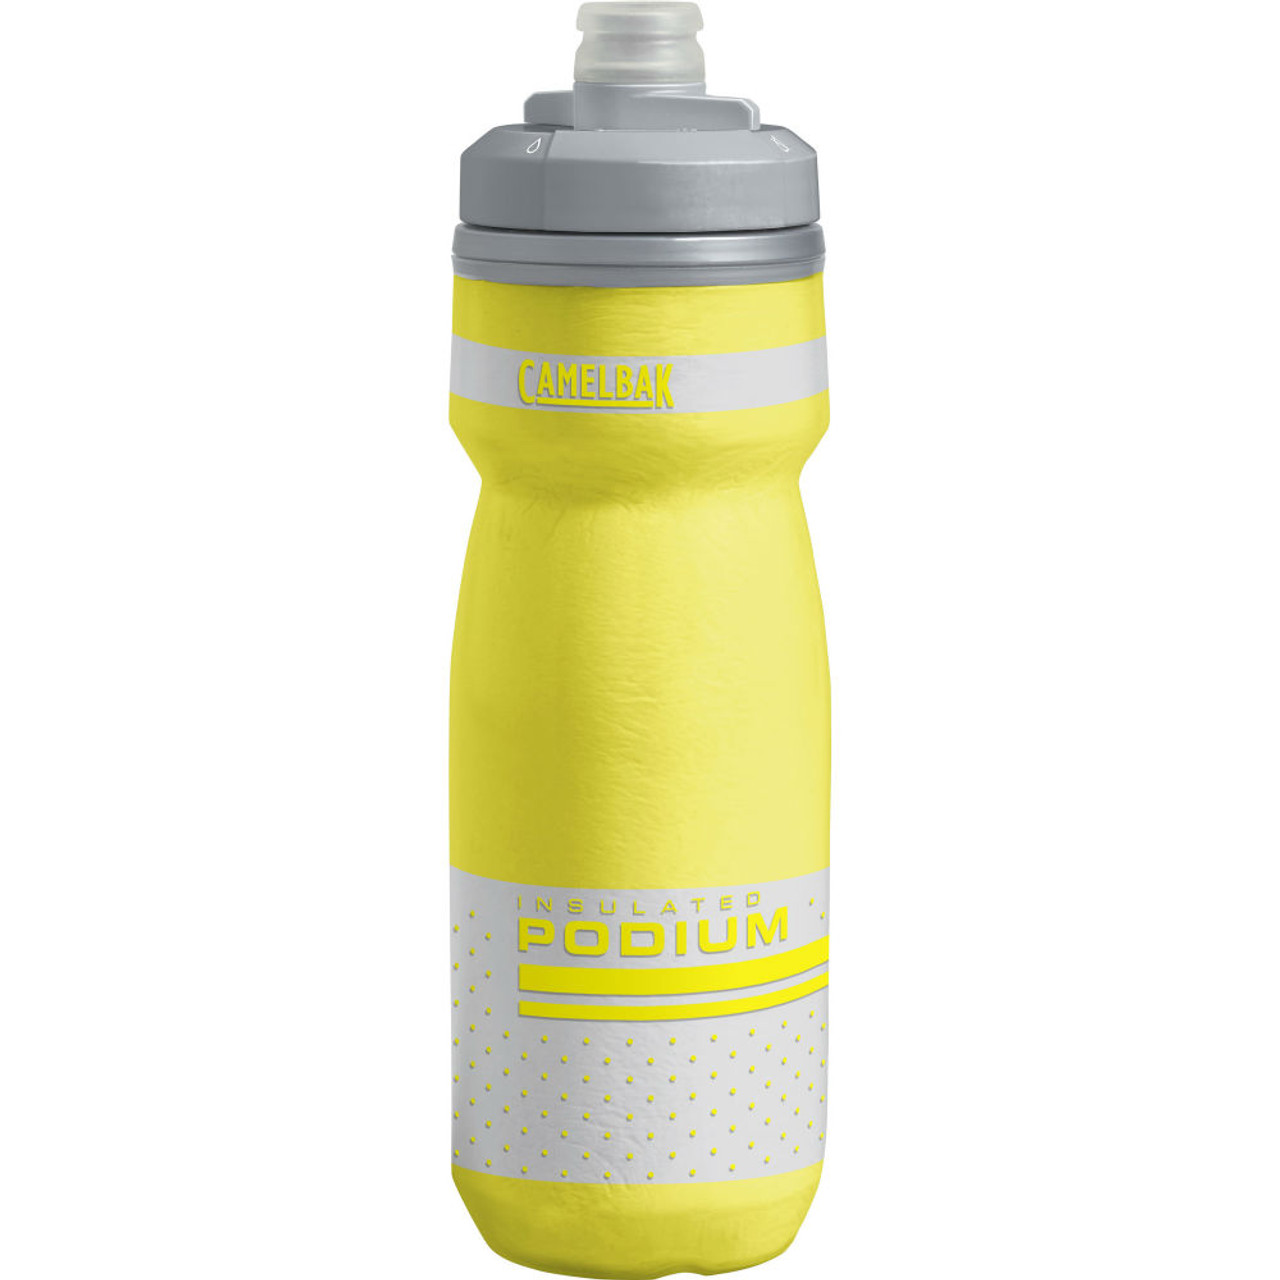 c4bbf55979 Double-wall construction keeps water cold twice as long as regular sport  bottles